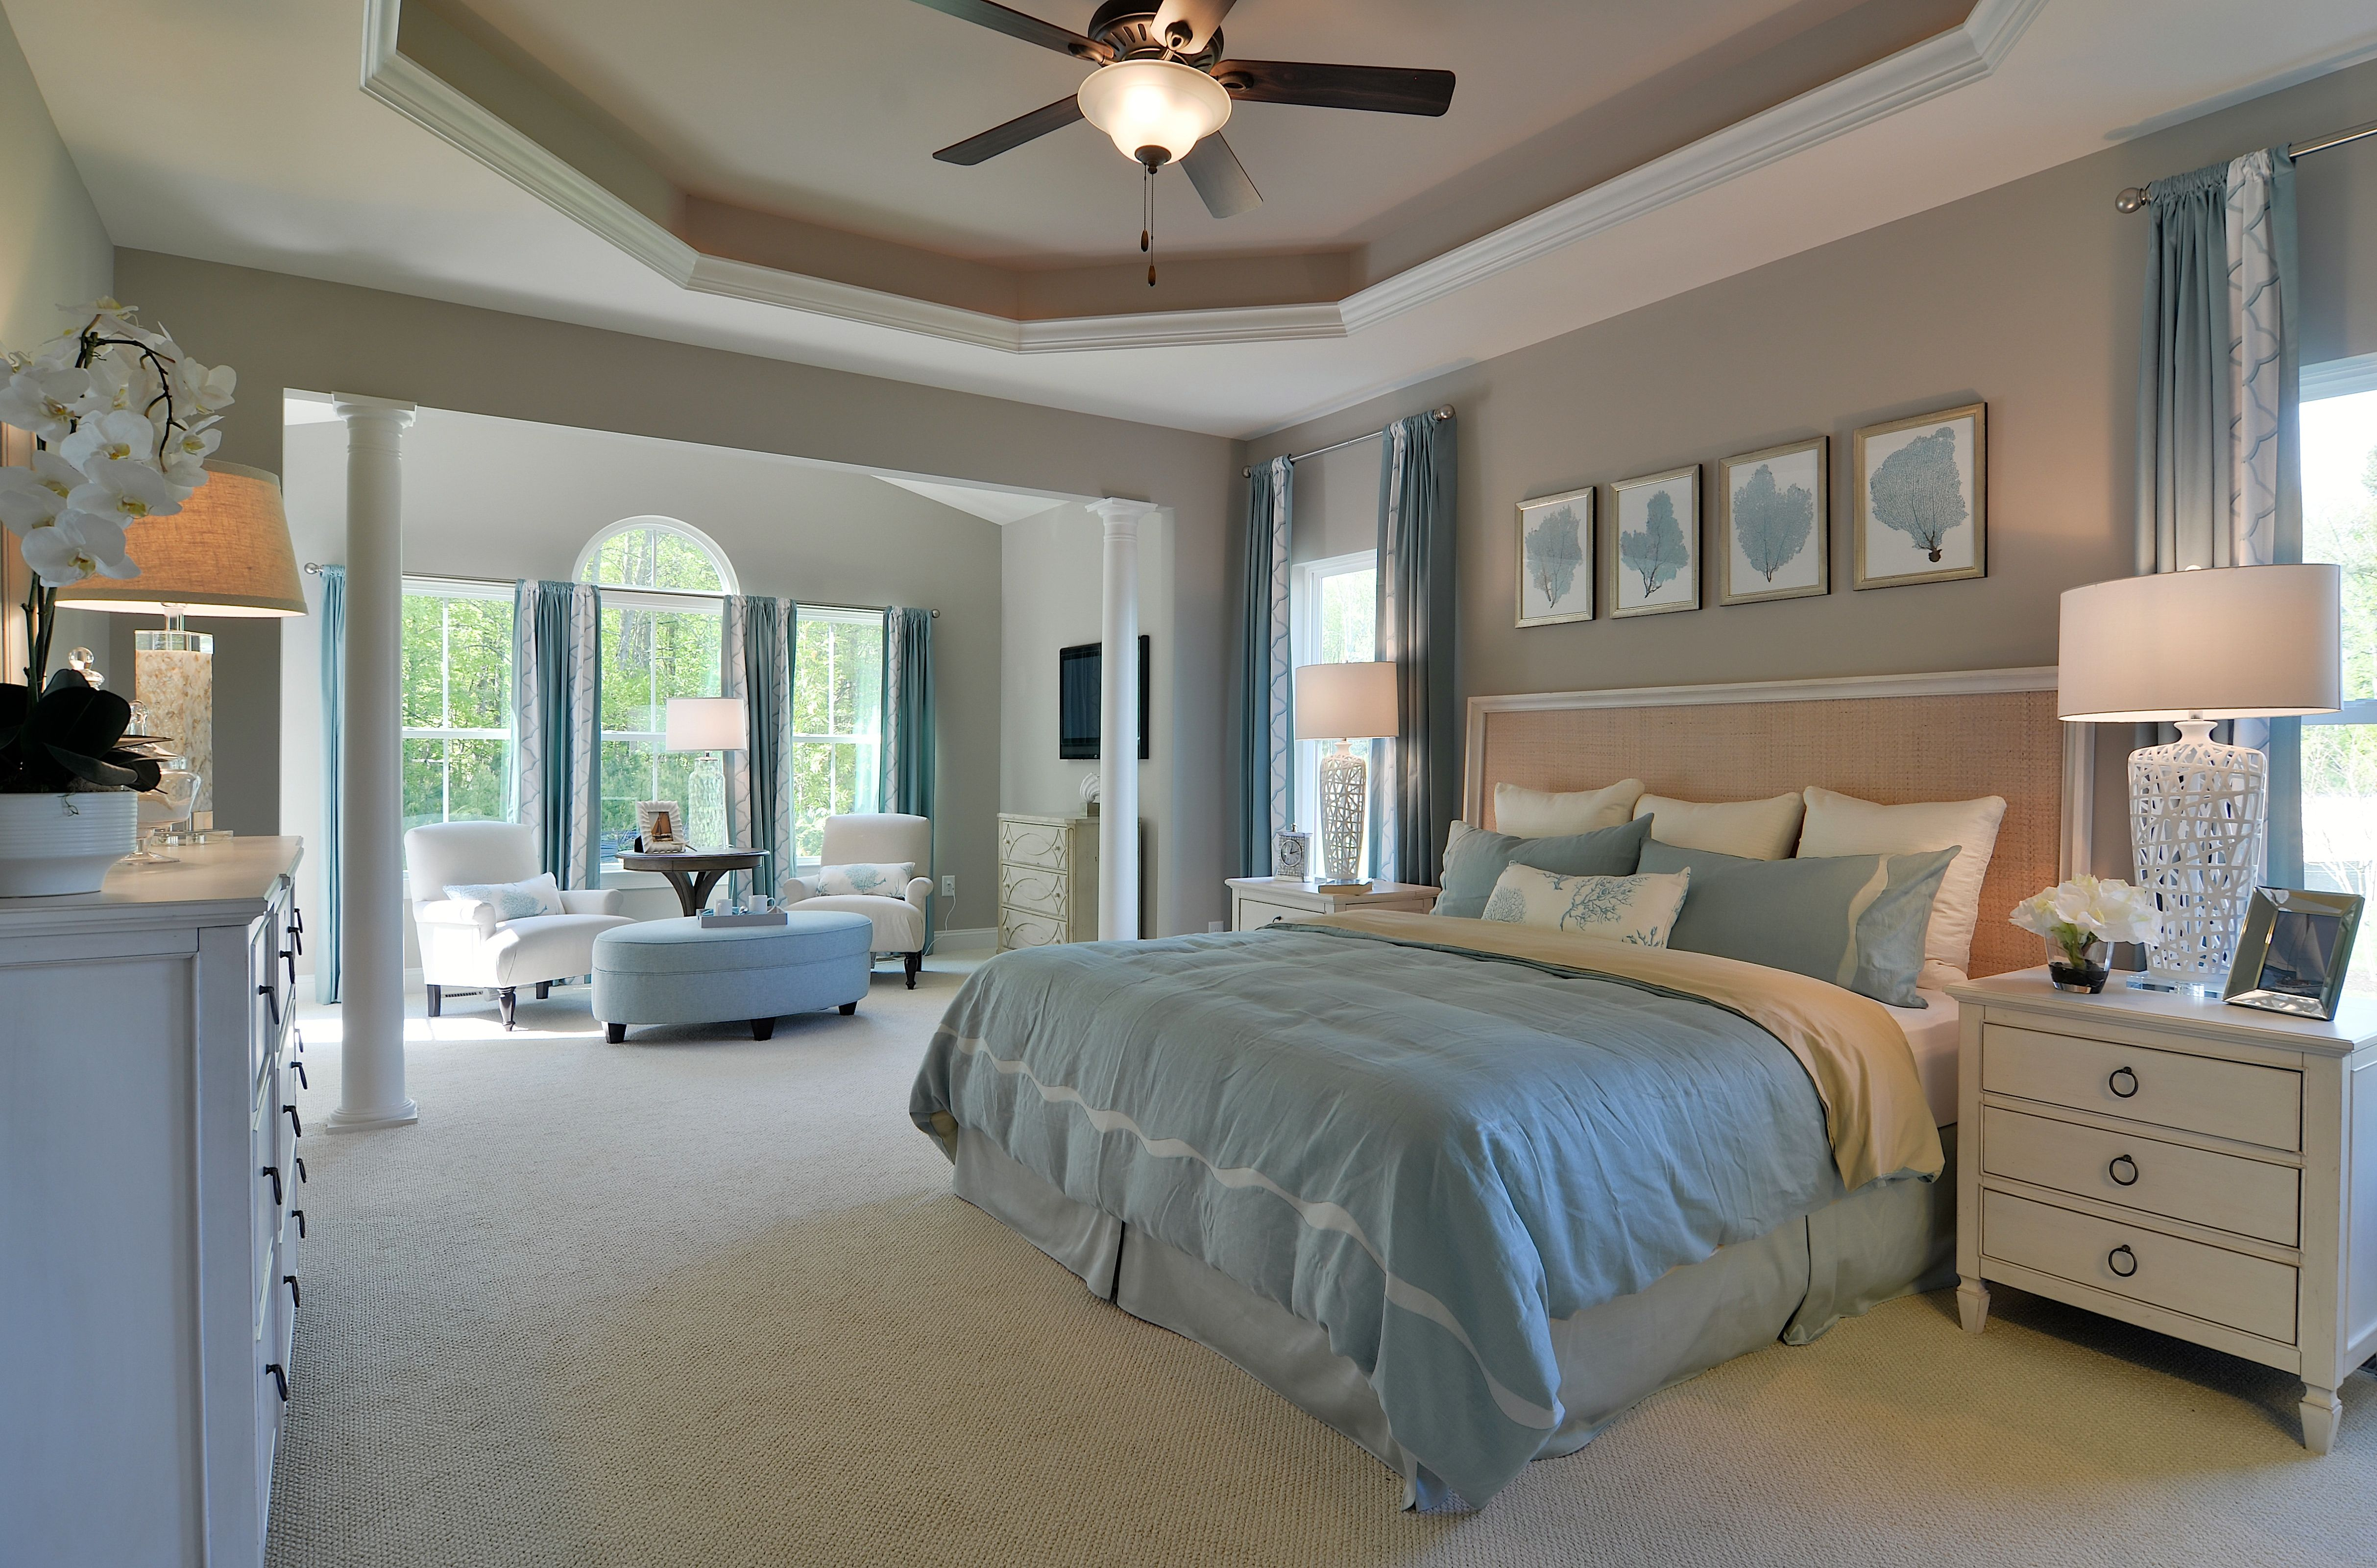 Spacious And Airy Master Bedroom With Tray Ceiling 2014 Copyright